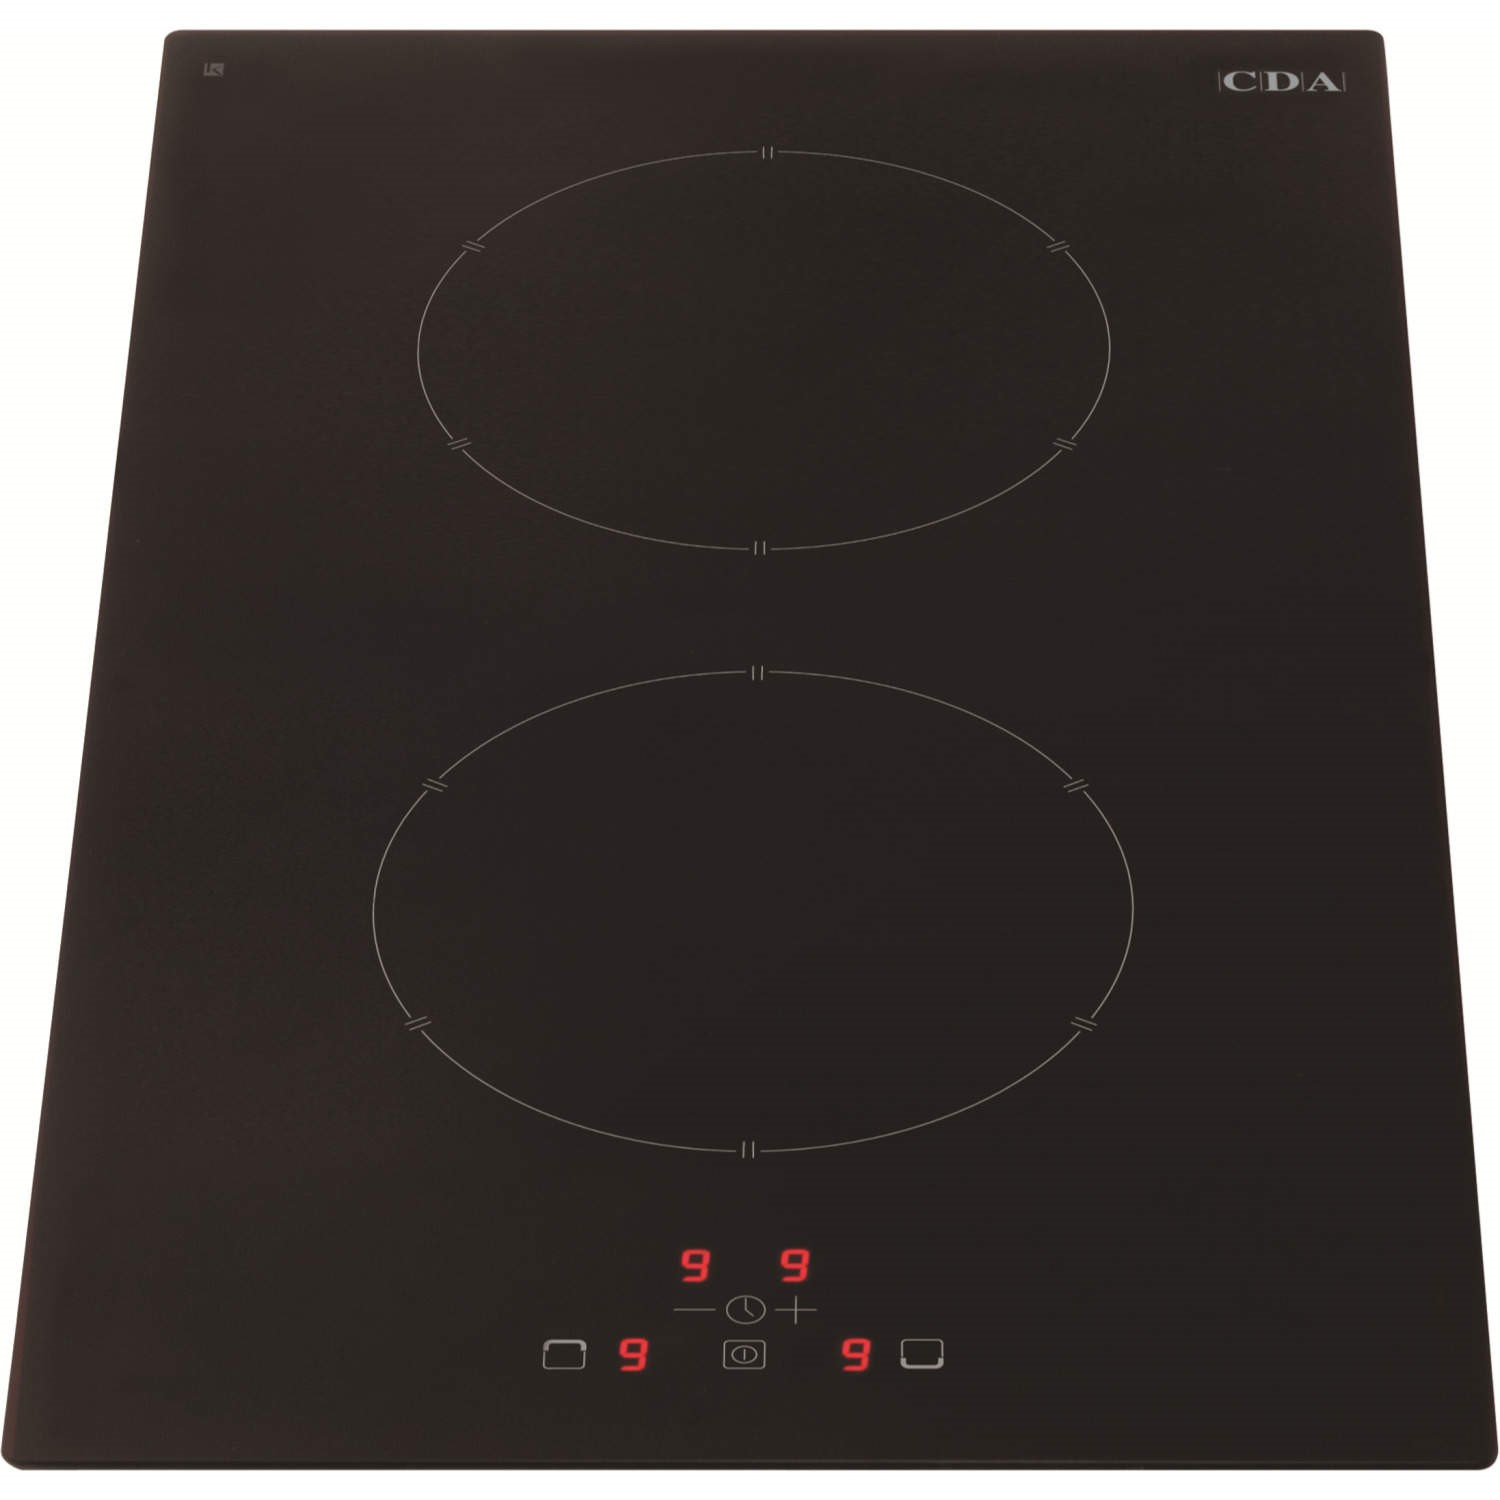 CDA HN3620FR 30cm Touch Control Two Zone Frameless Induction Hob Black